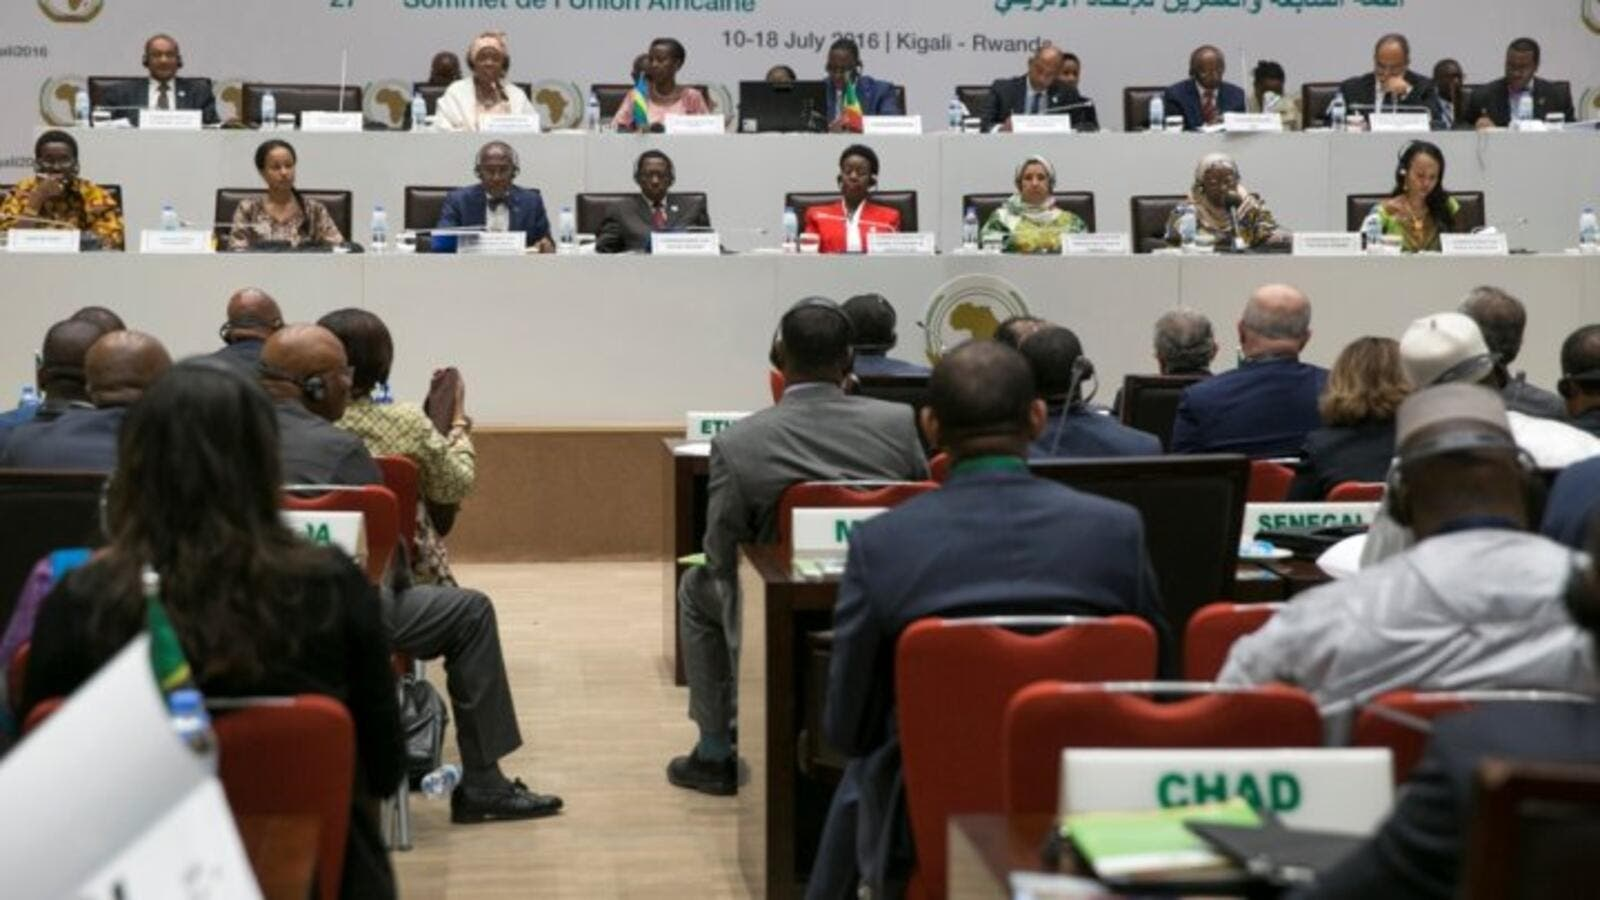 Politicians attend a meeting of the African Union's (AU) economic development program New Partnership for Africa's Development (NEPAD). (AFP/File)